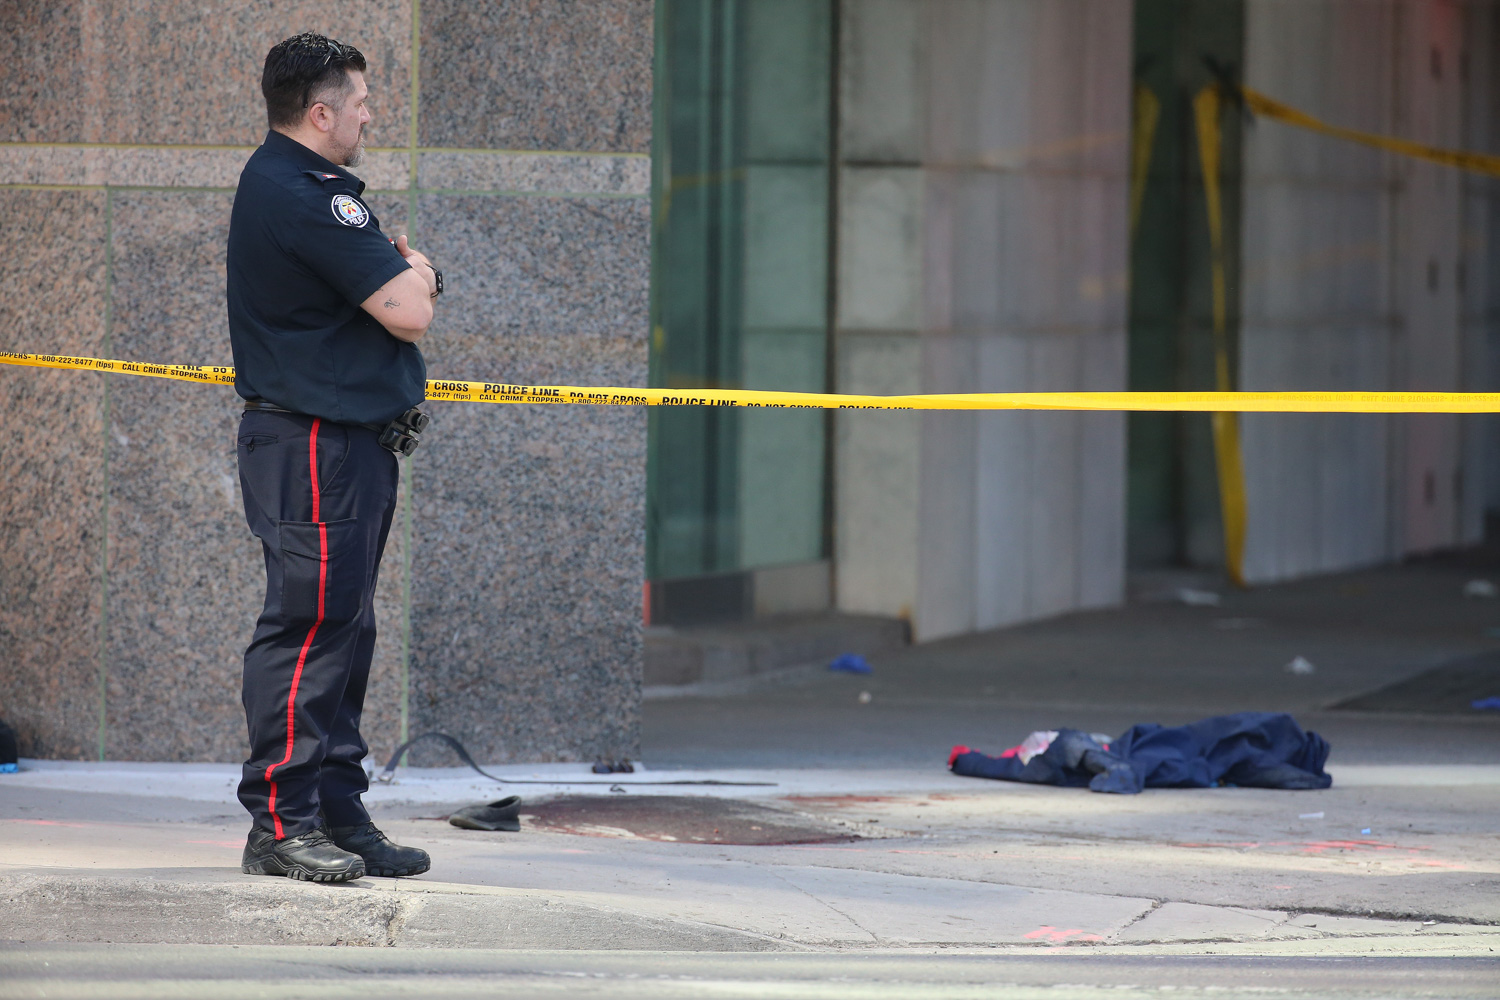 """<div class=""""meta image-caption""""><div class=""""origin-logo origin-image none""""><span>none</span></div><span class=""""caption-text"""">Blood and clothing are on the Westside sidewalk at Park Home Avenue. (Steve Russell/Toronto Star via Getty Images)</span></div>"""